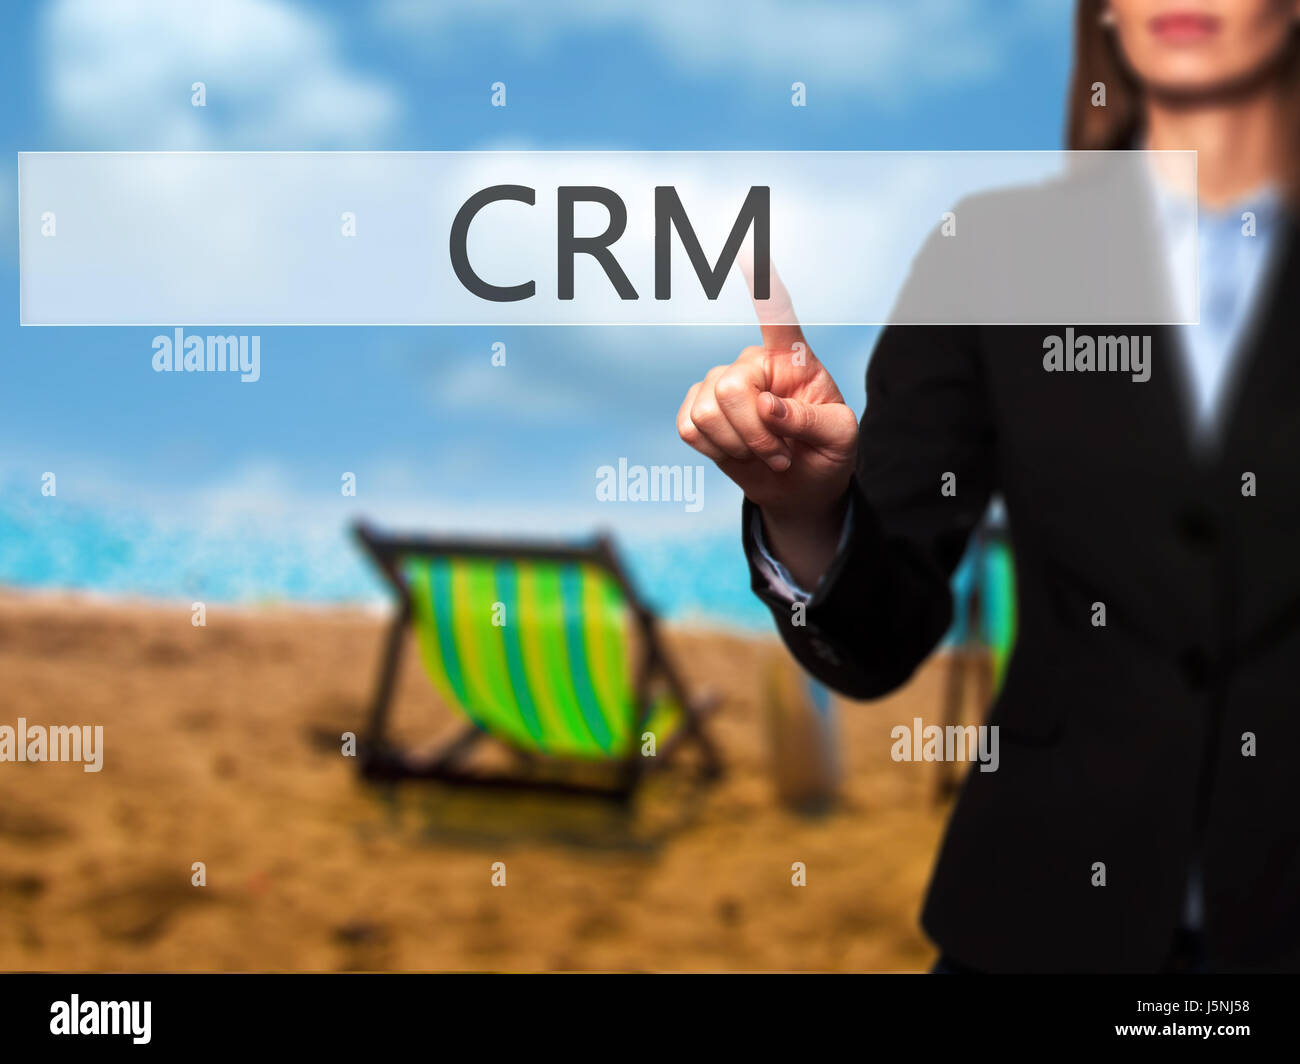 CRM -  Female touching virtual button. Business, internet concept. Stock Photo - Stock Image